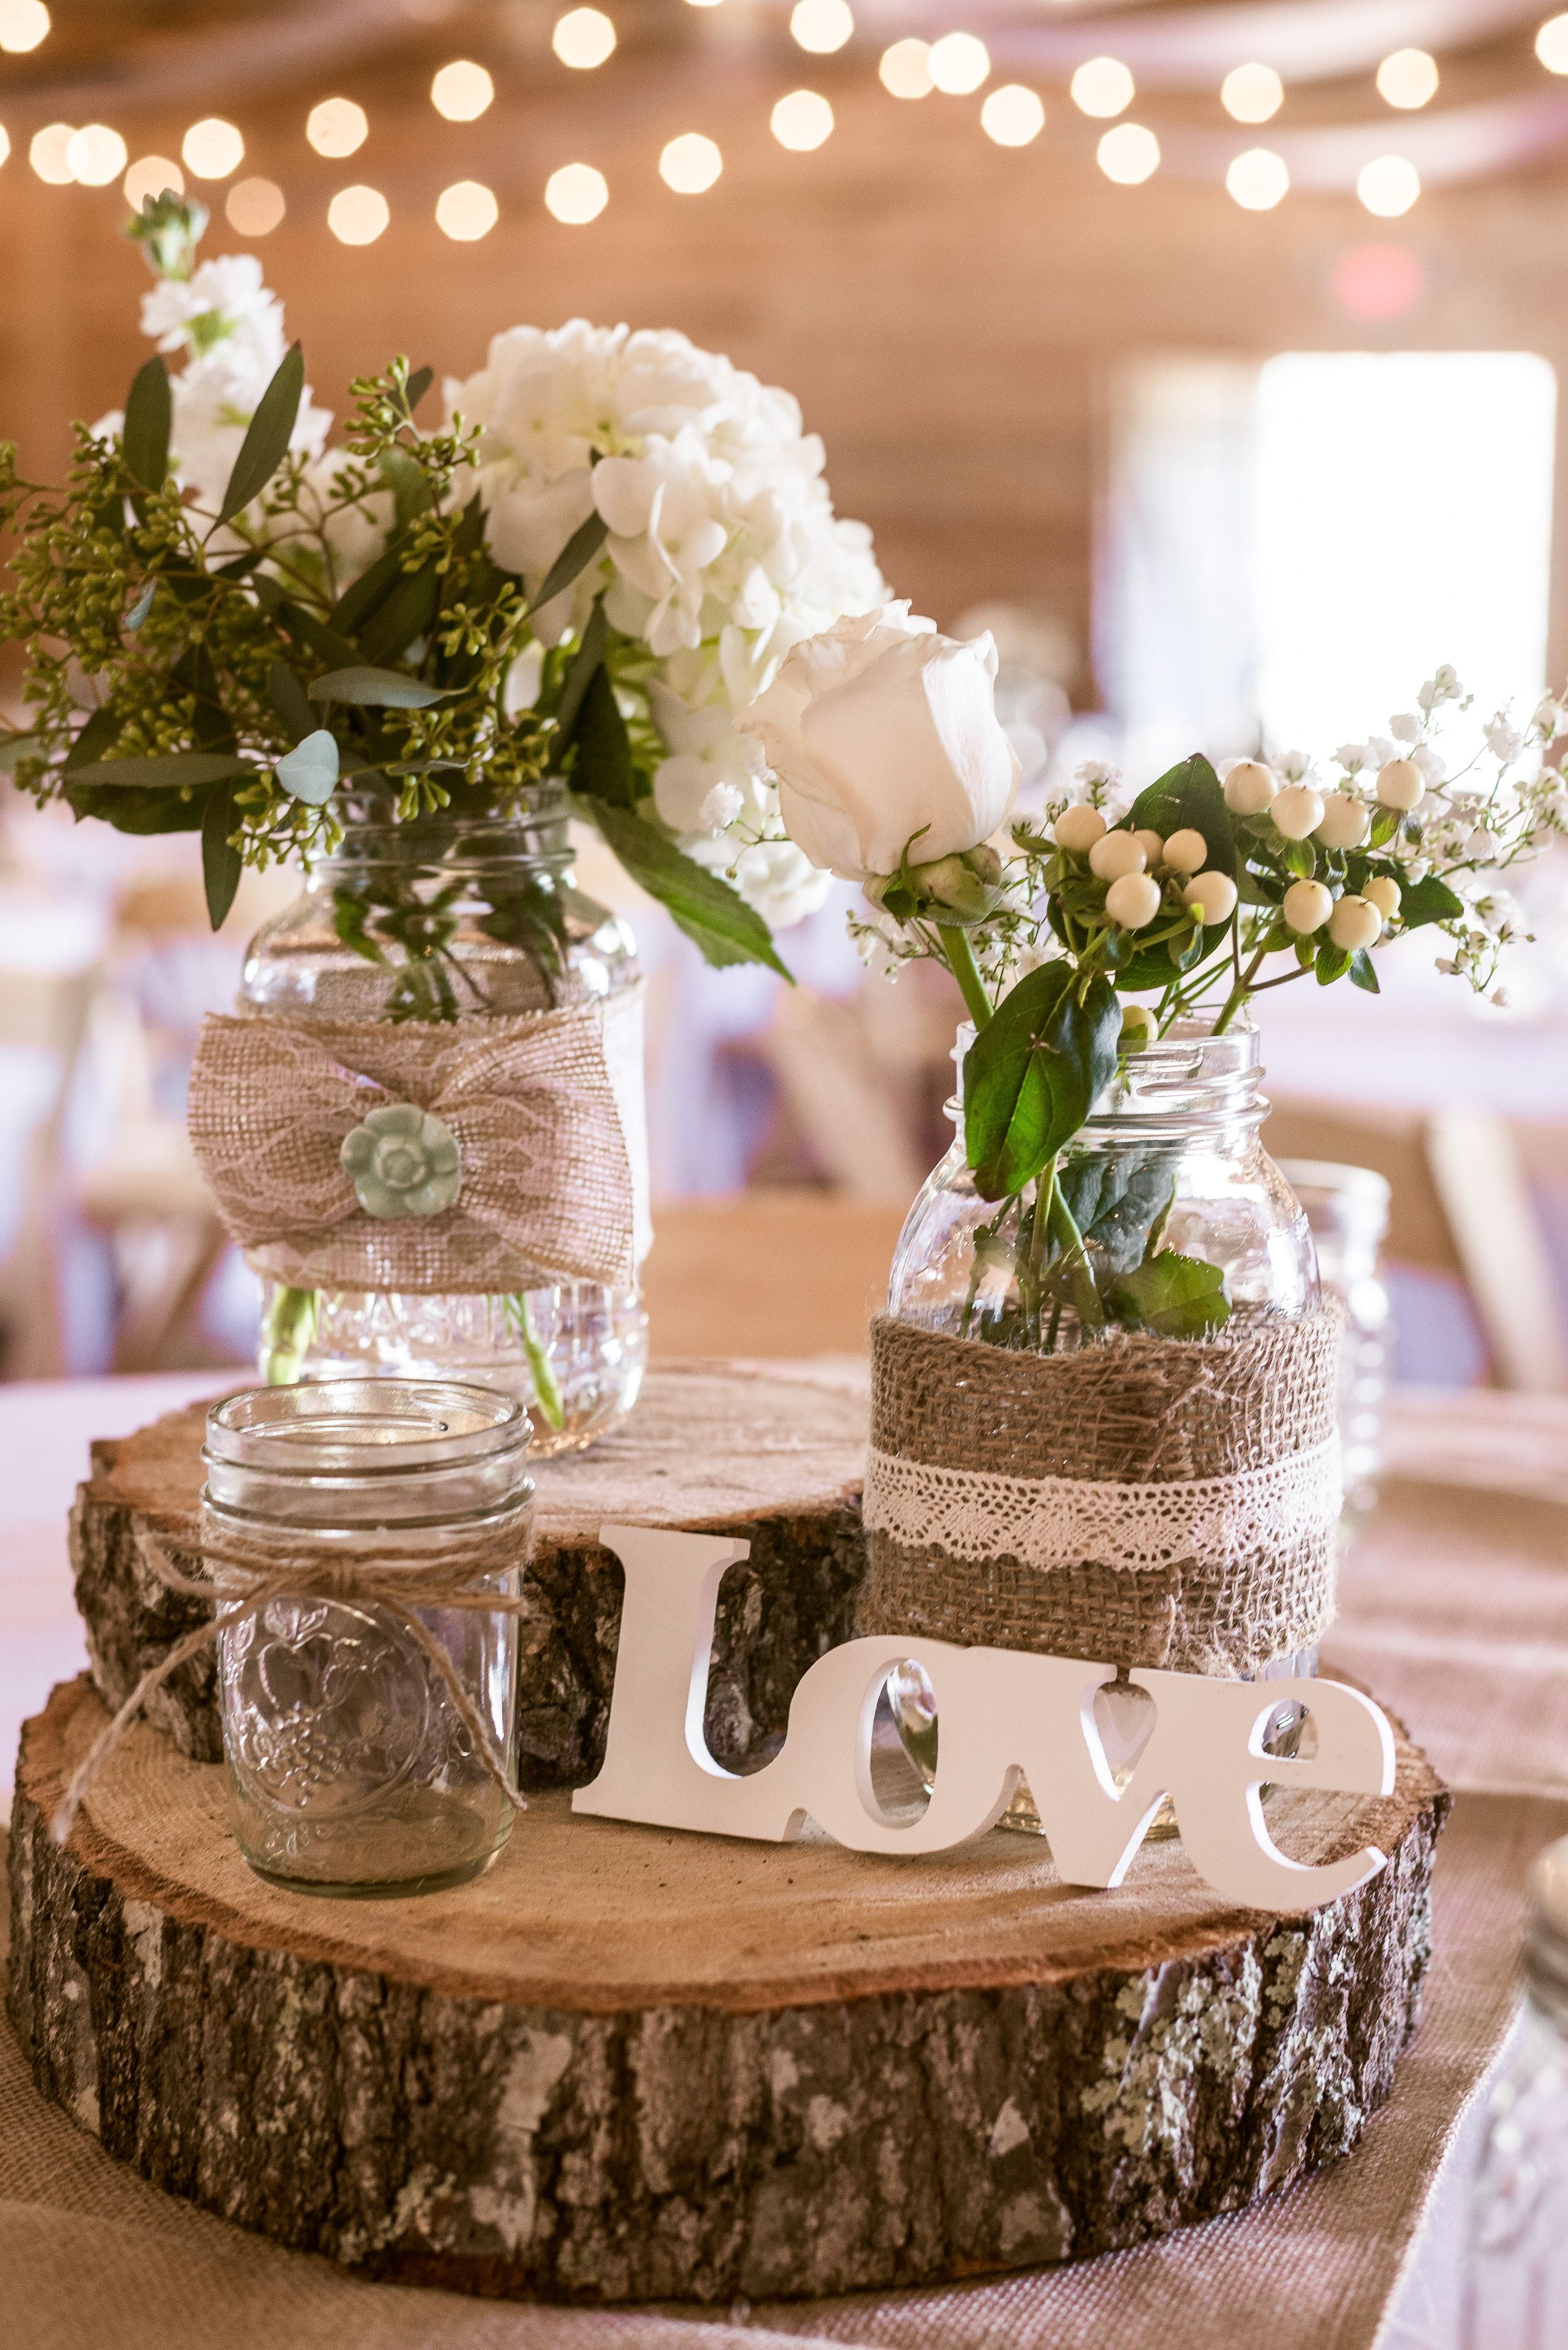 Mint Burlap Lace Wood Wedding Centerpiece For Rustic Barn